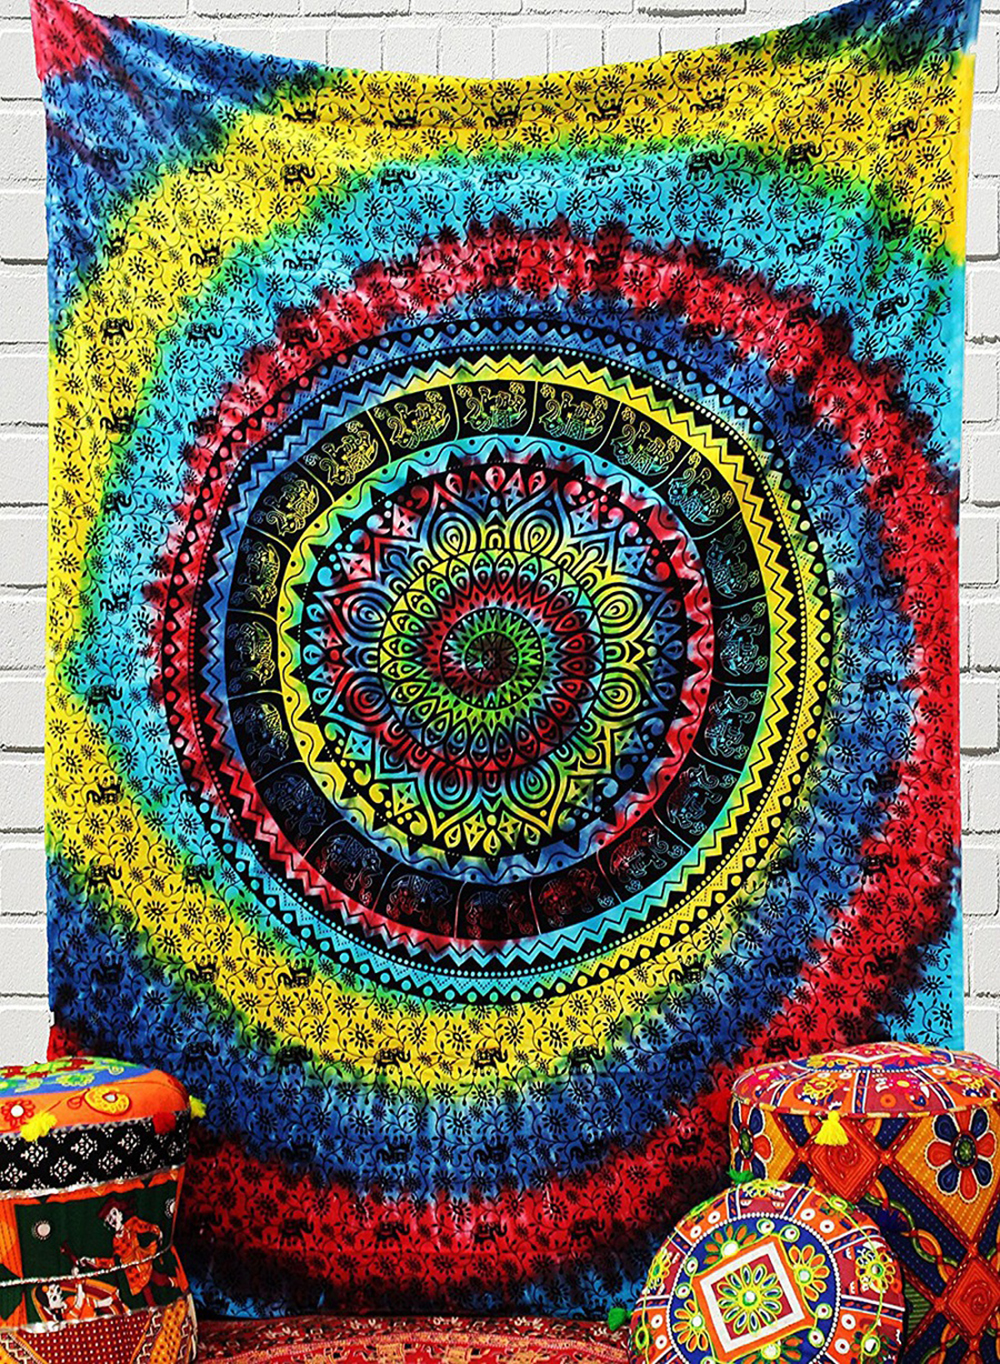 Urban TapestryDye Twin Tapestry Hippie Tapestry Wall Hanging Bohemian Art Decor Single Curtain Spiral Multi Colour 148*200cm